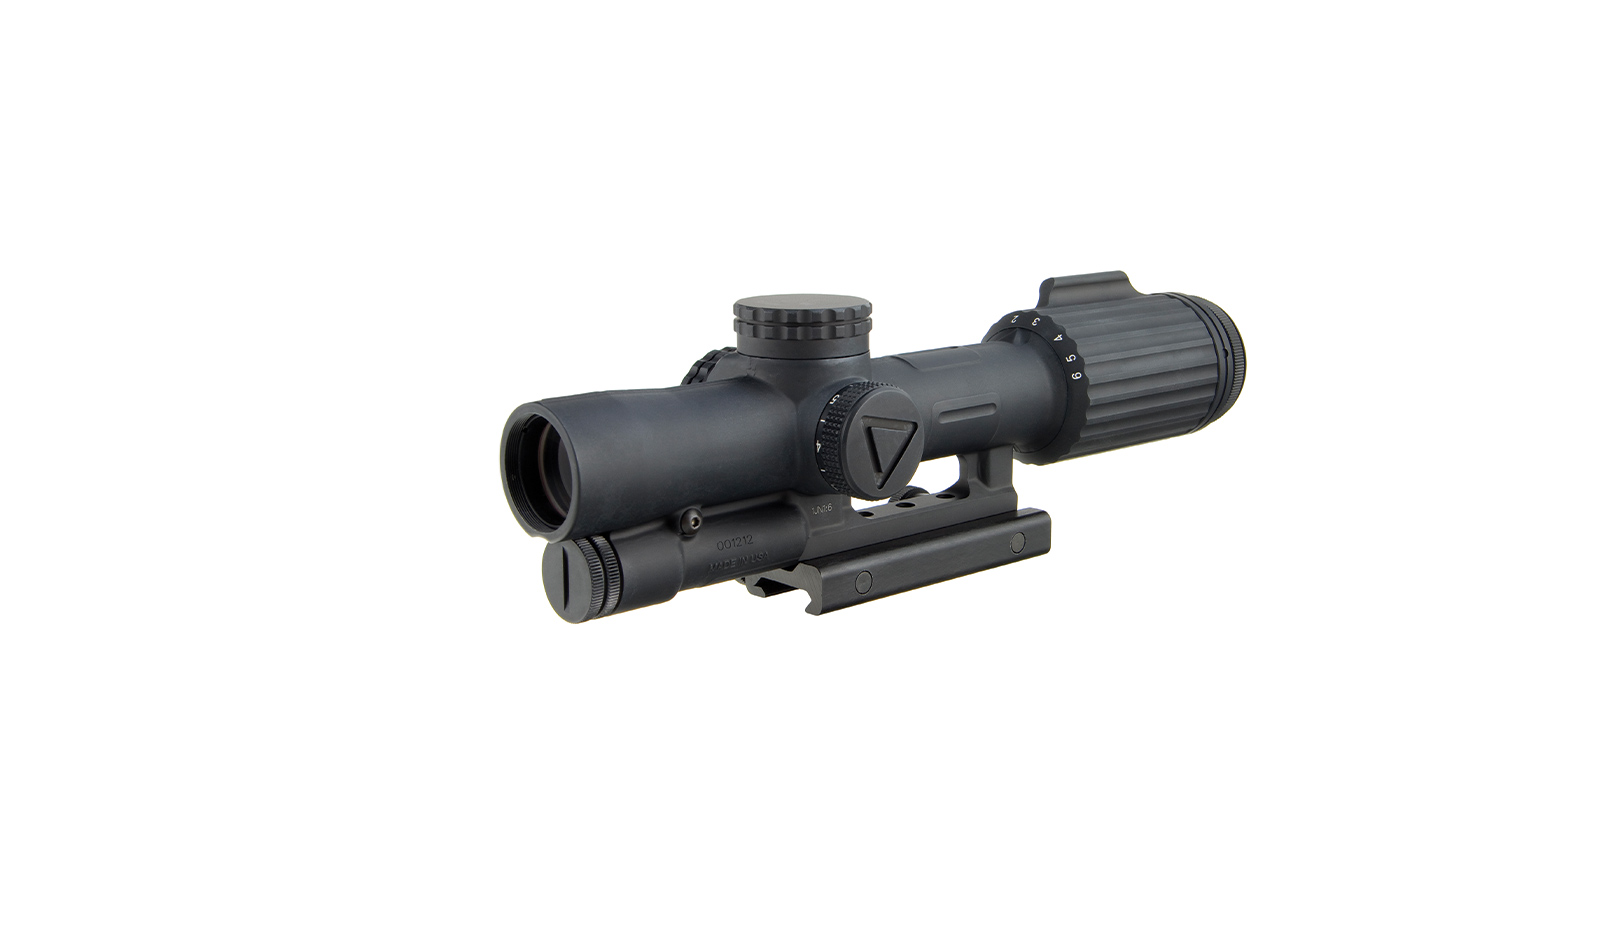 Trijicon VCOG® 1-6x24 Riflescope